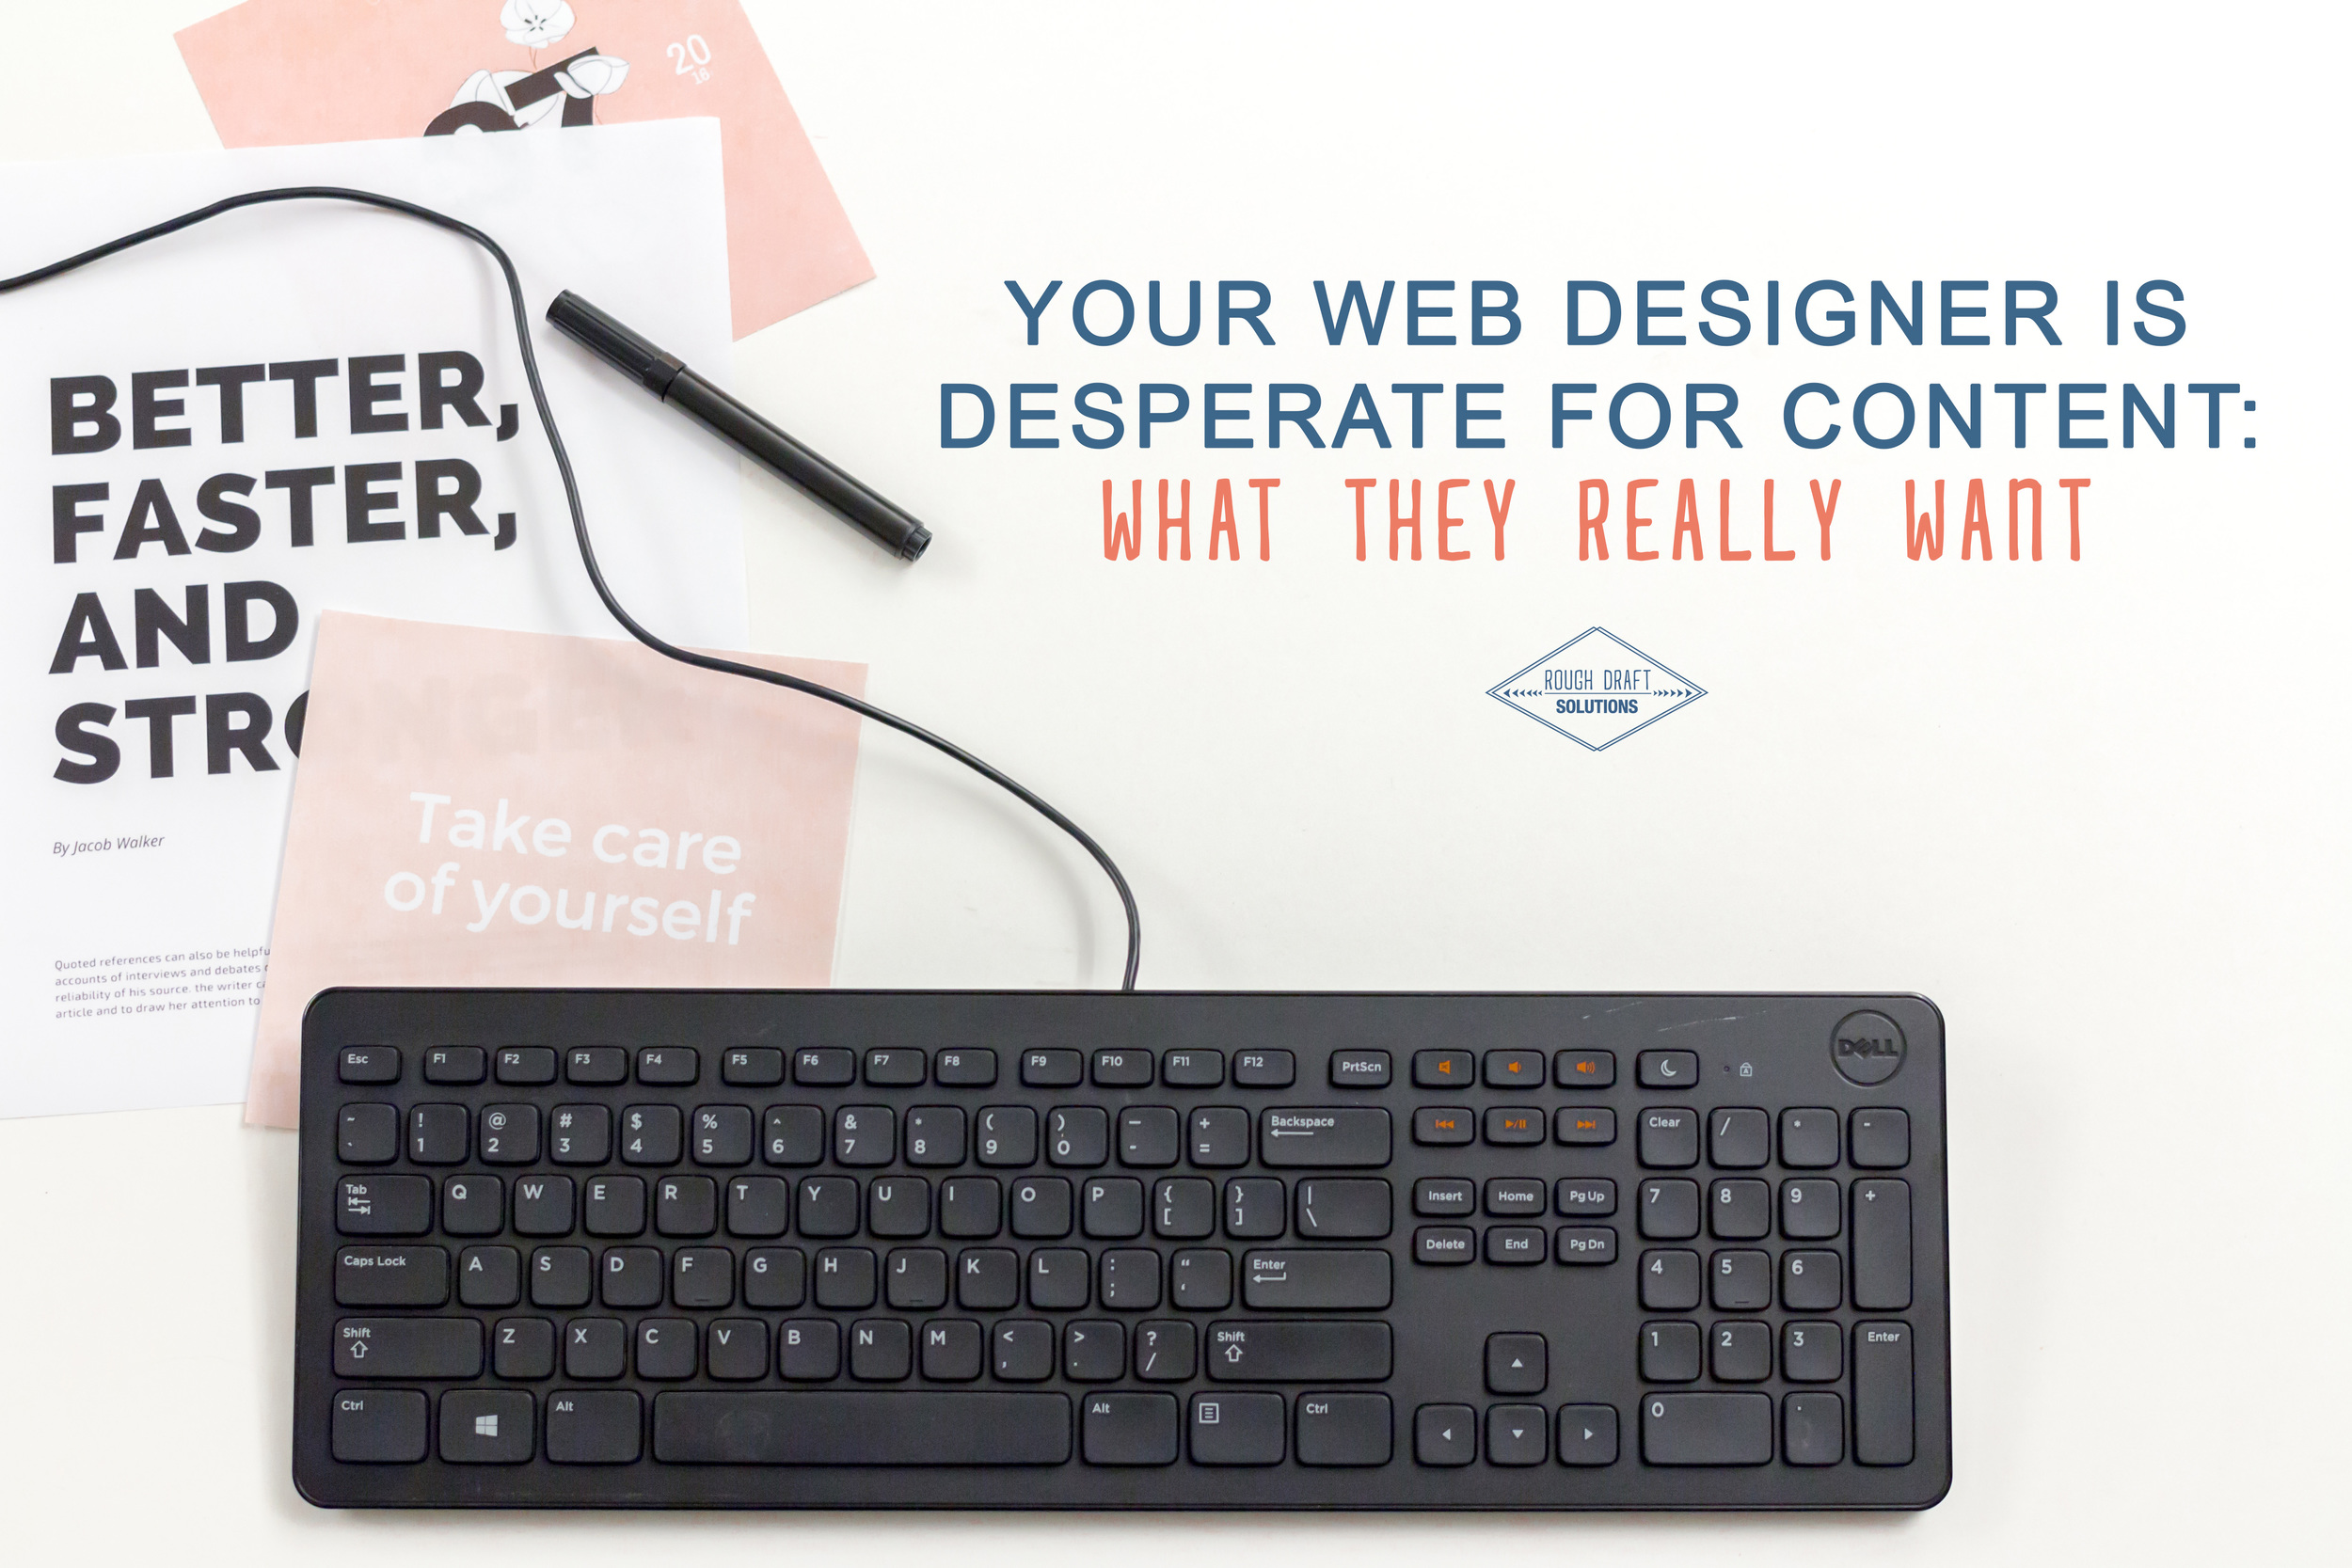 Your Web Designer Is Desperate for Content